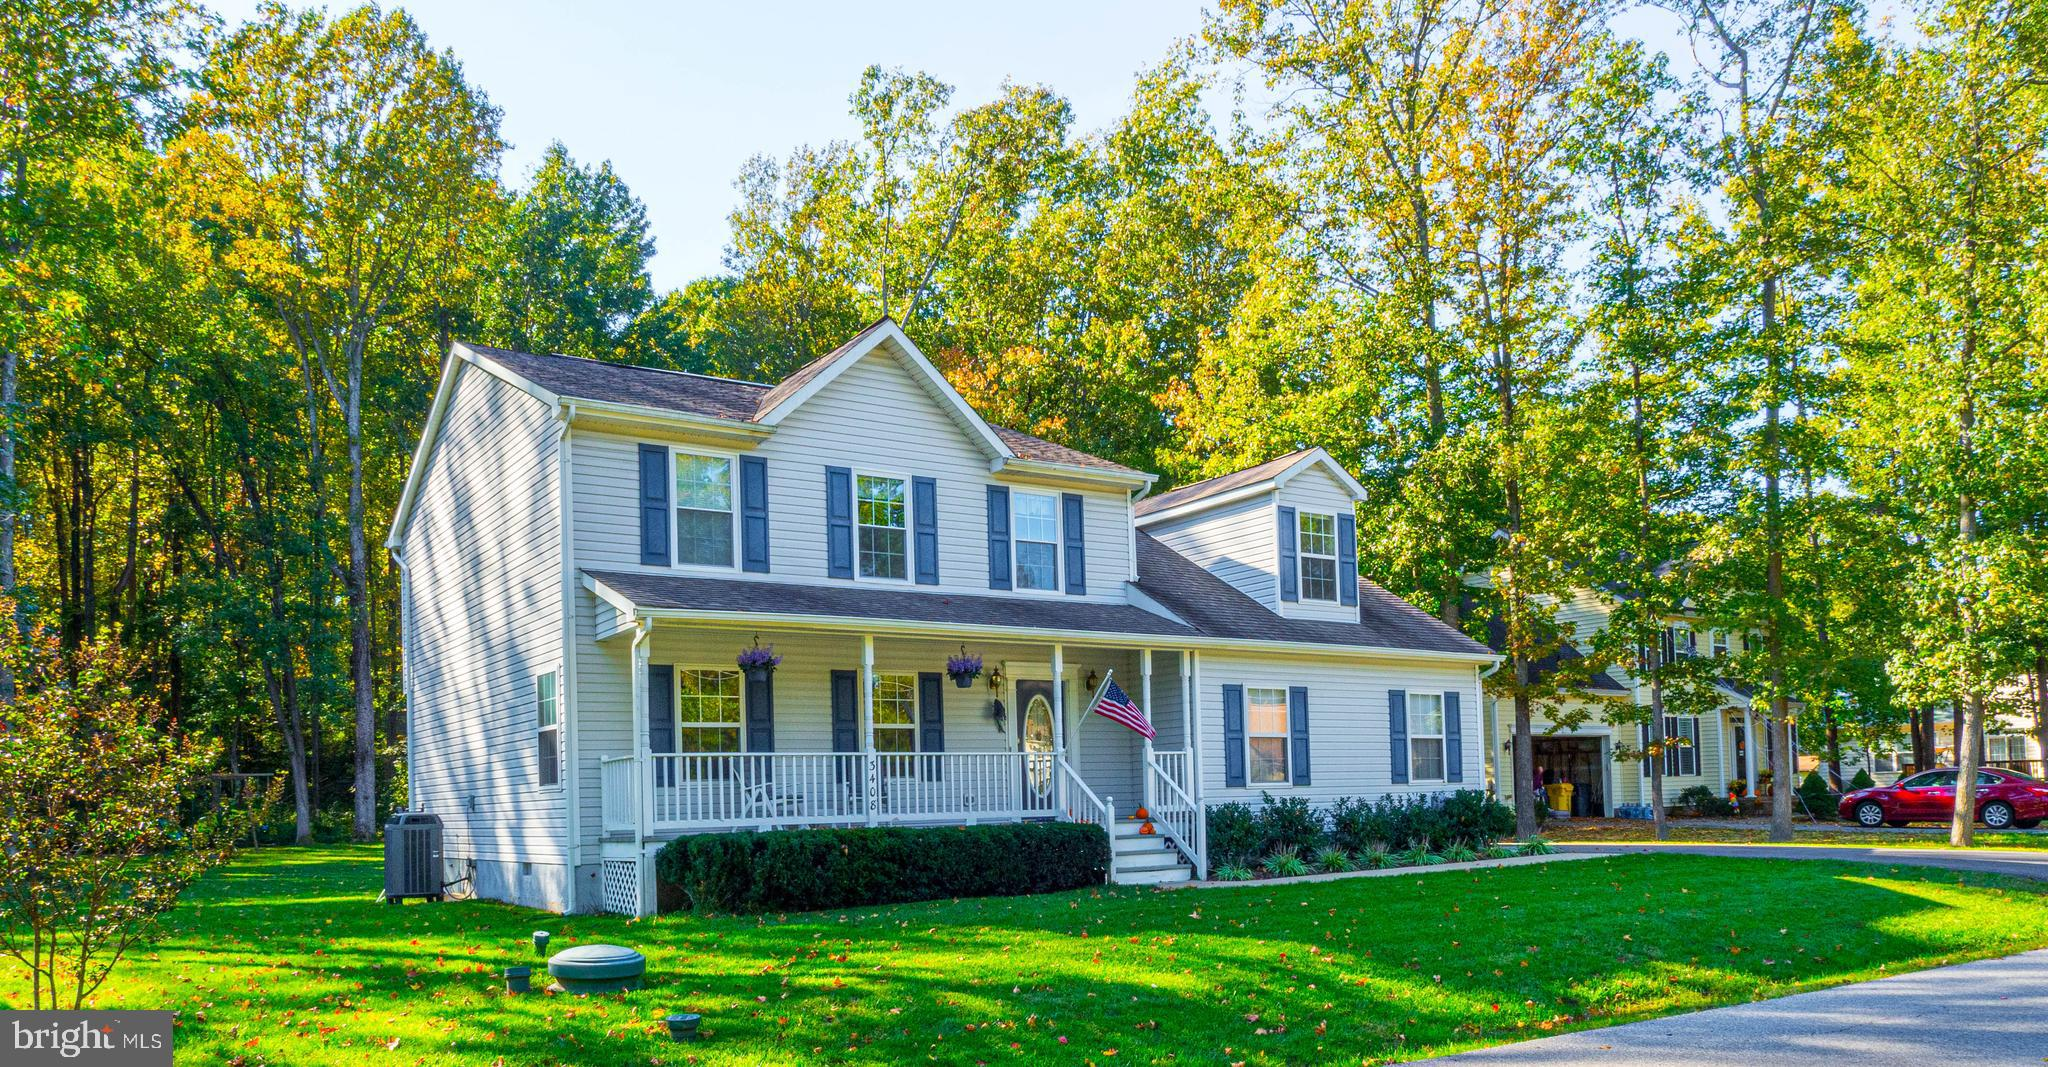 Tastefully updated colonial with beautiful backyard for kids, entertaining, or both.  This home is l